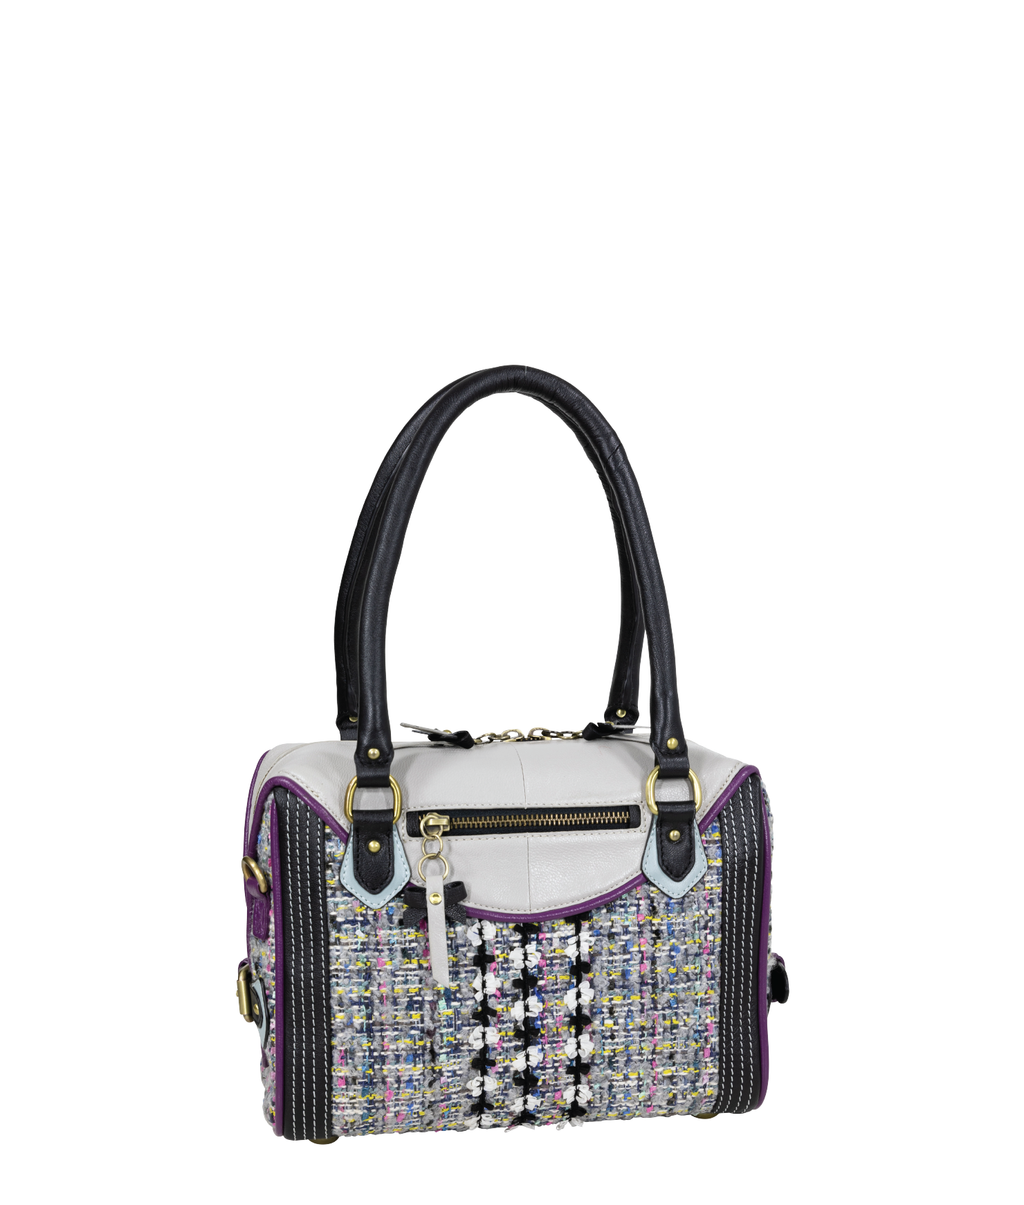 ISADORA MINI Bowler Bag - Twilight